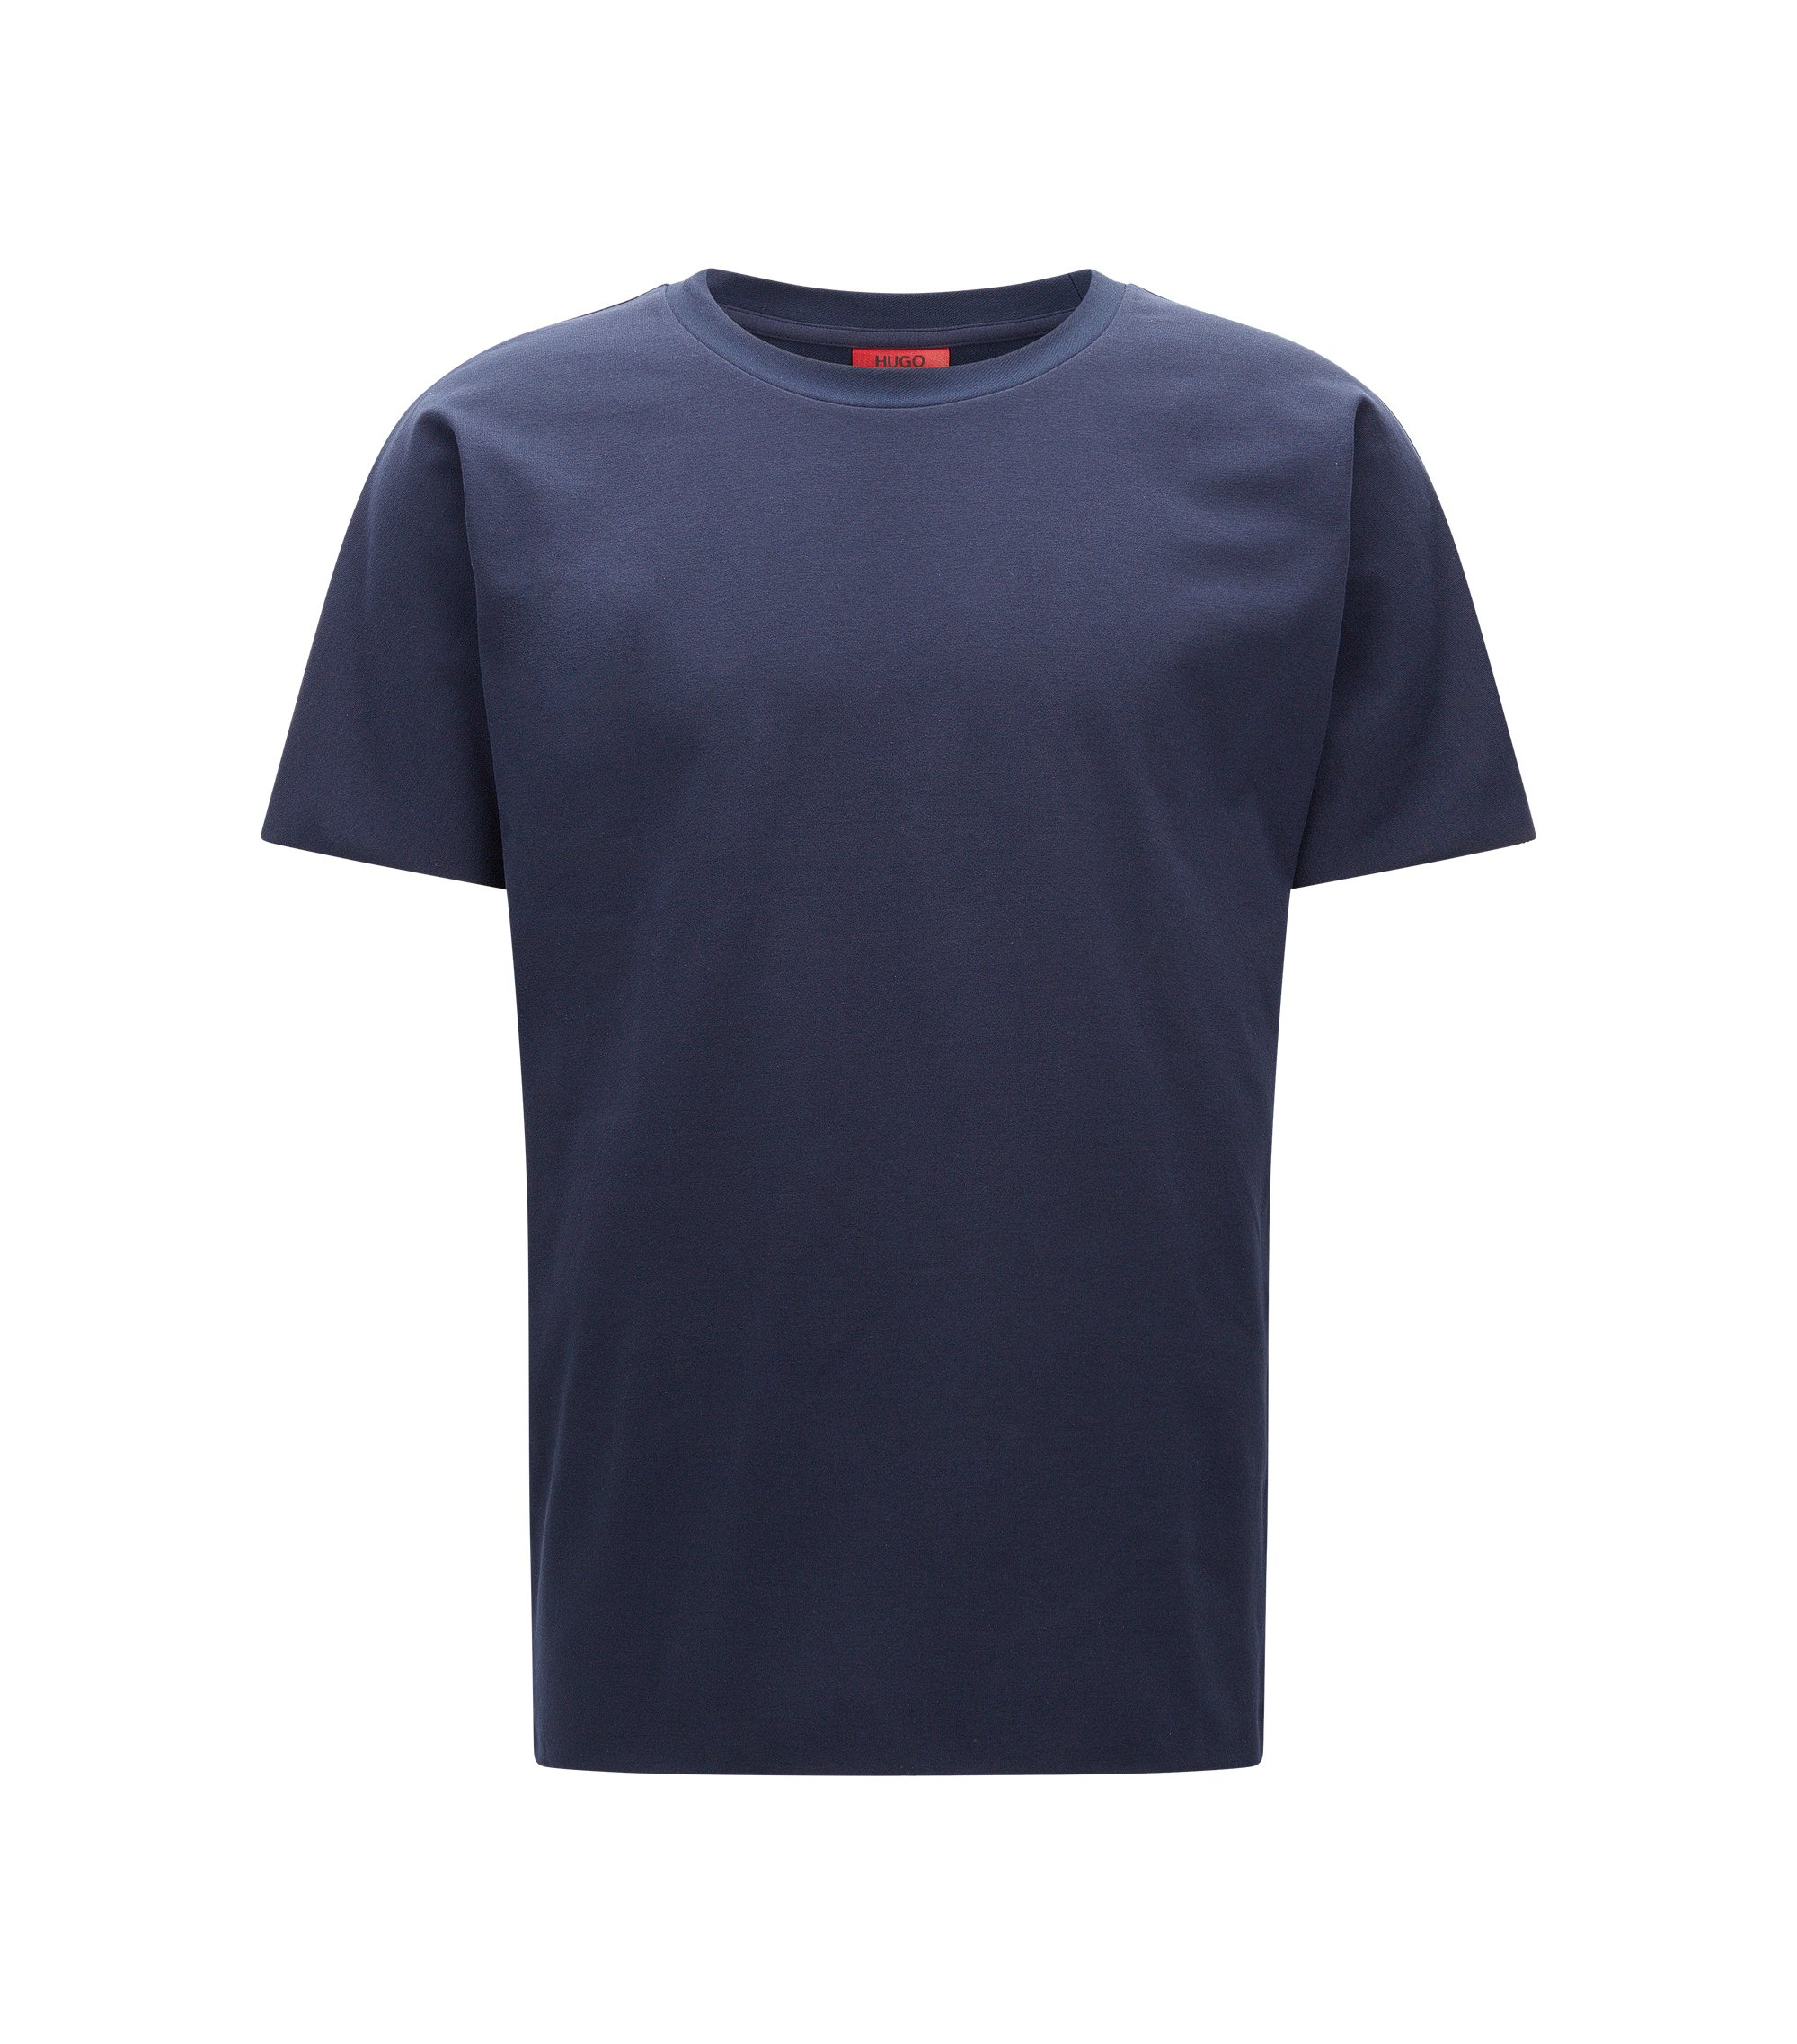 T-shirt relaxed fit in twill french terry, Blu scuro